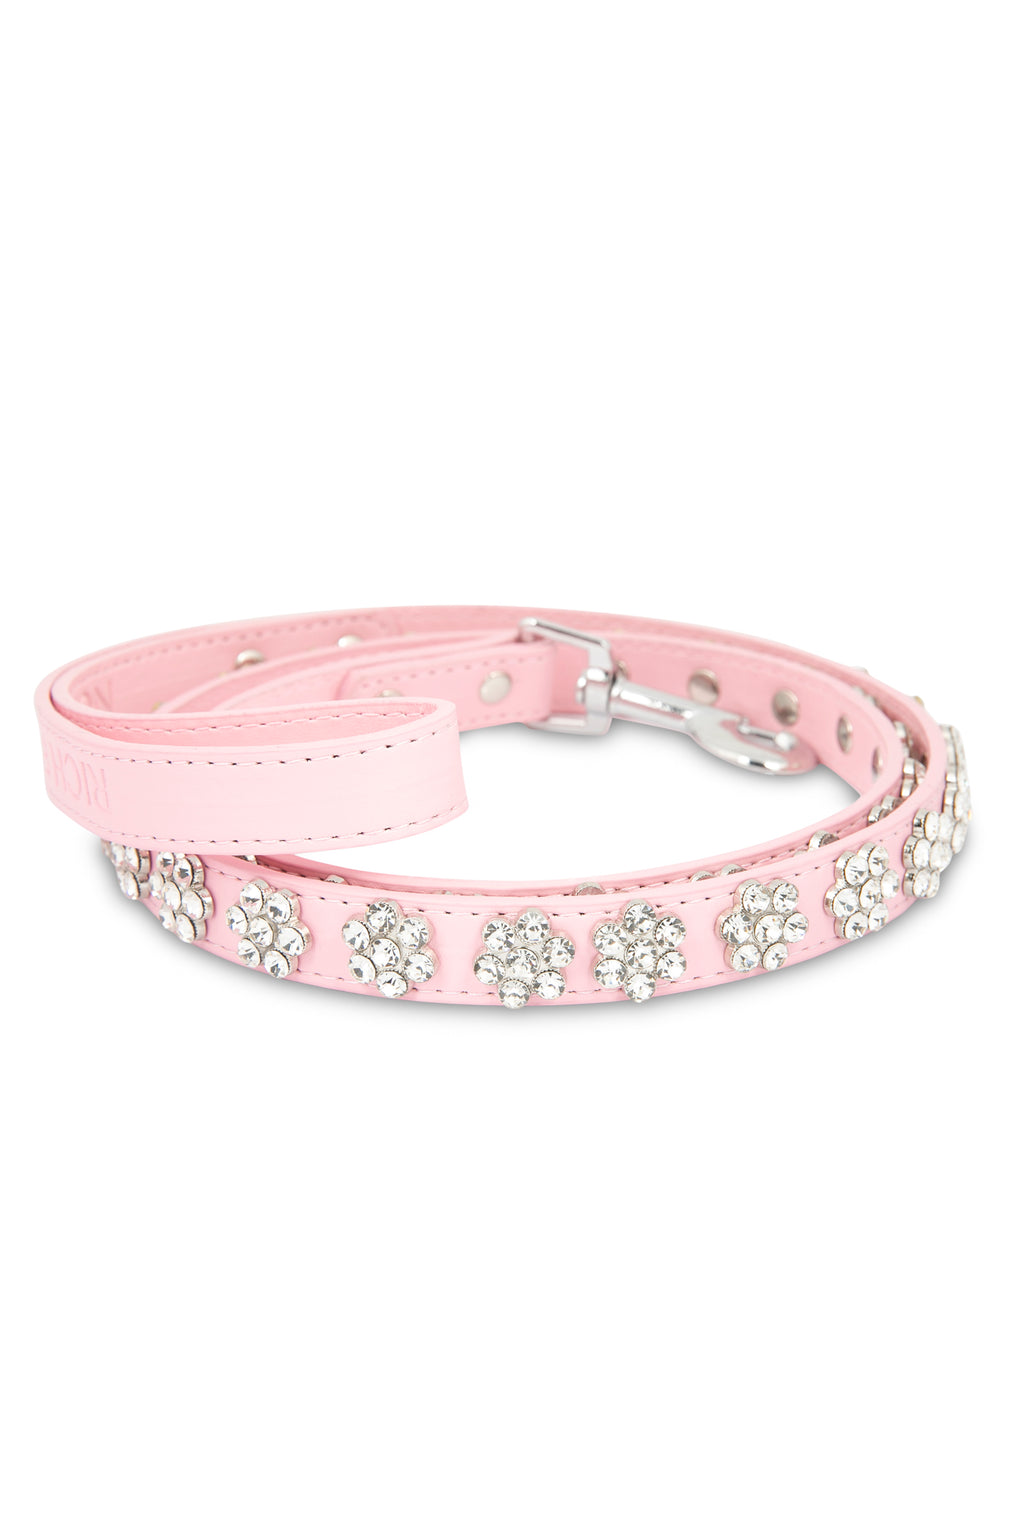 Flower Rhinestone Pink Leash